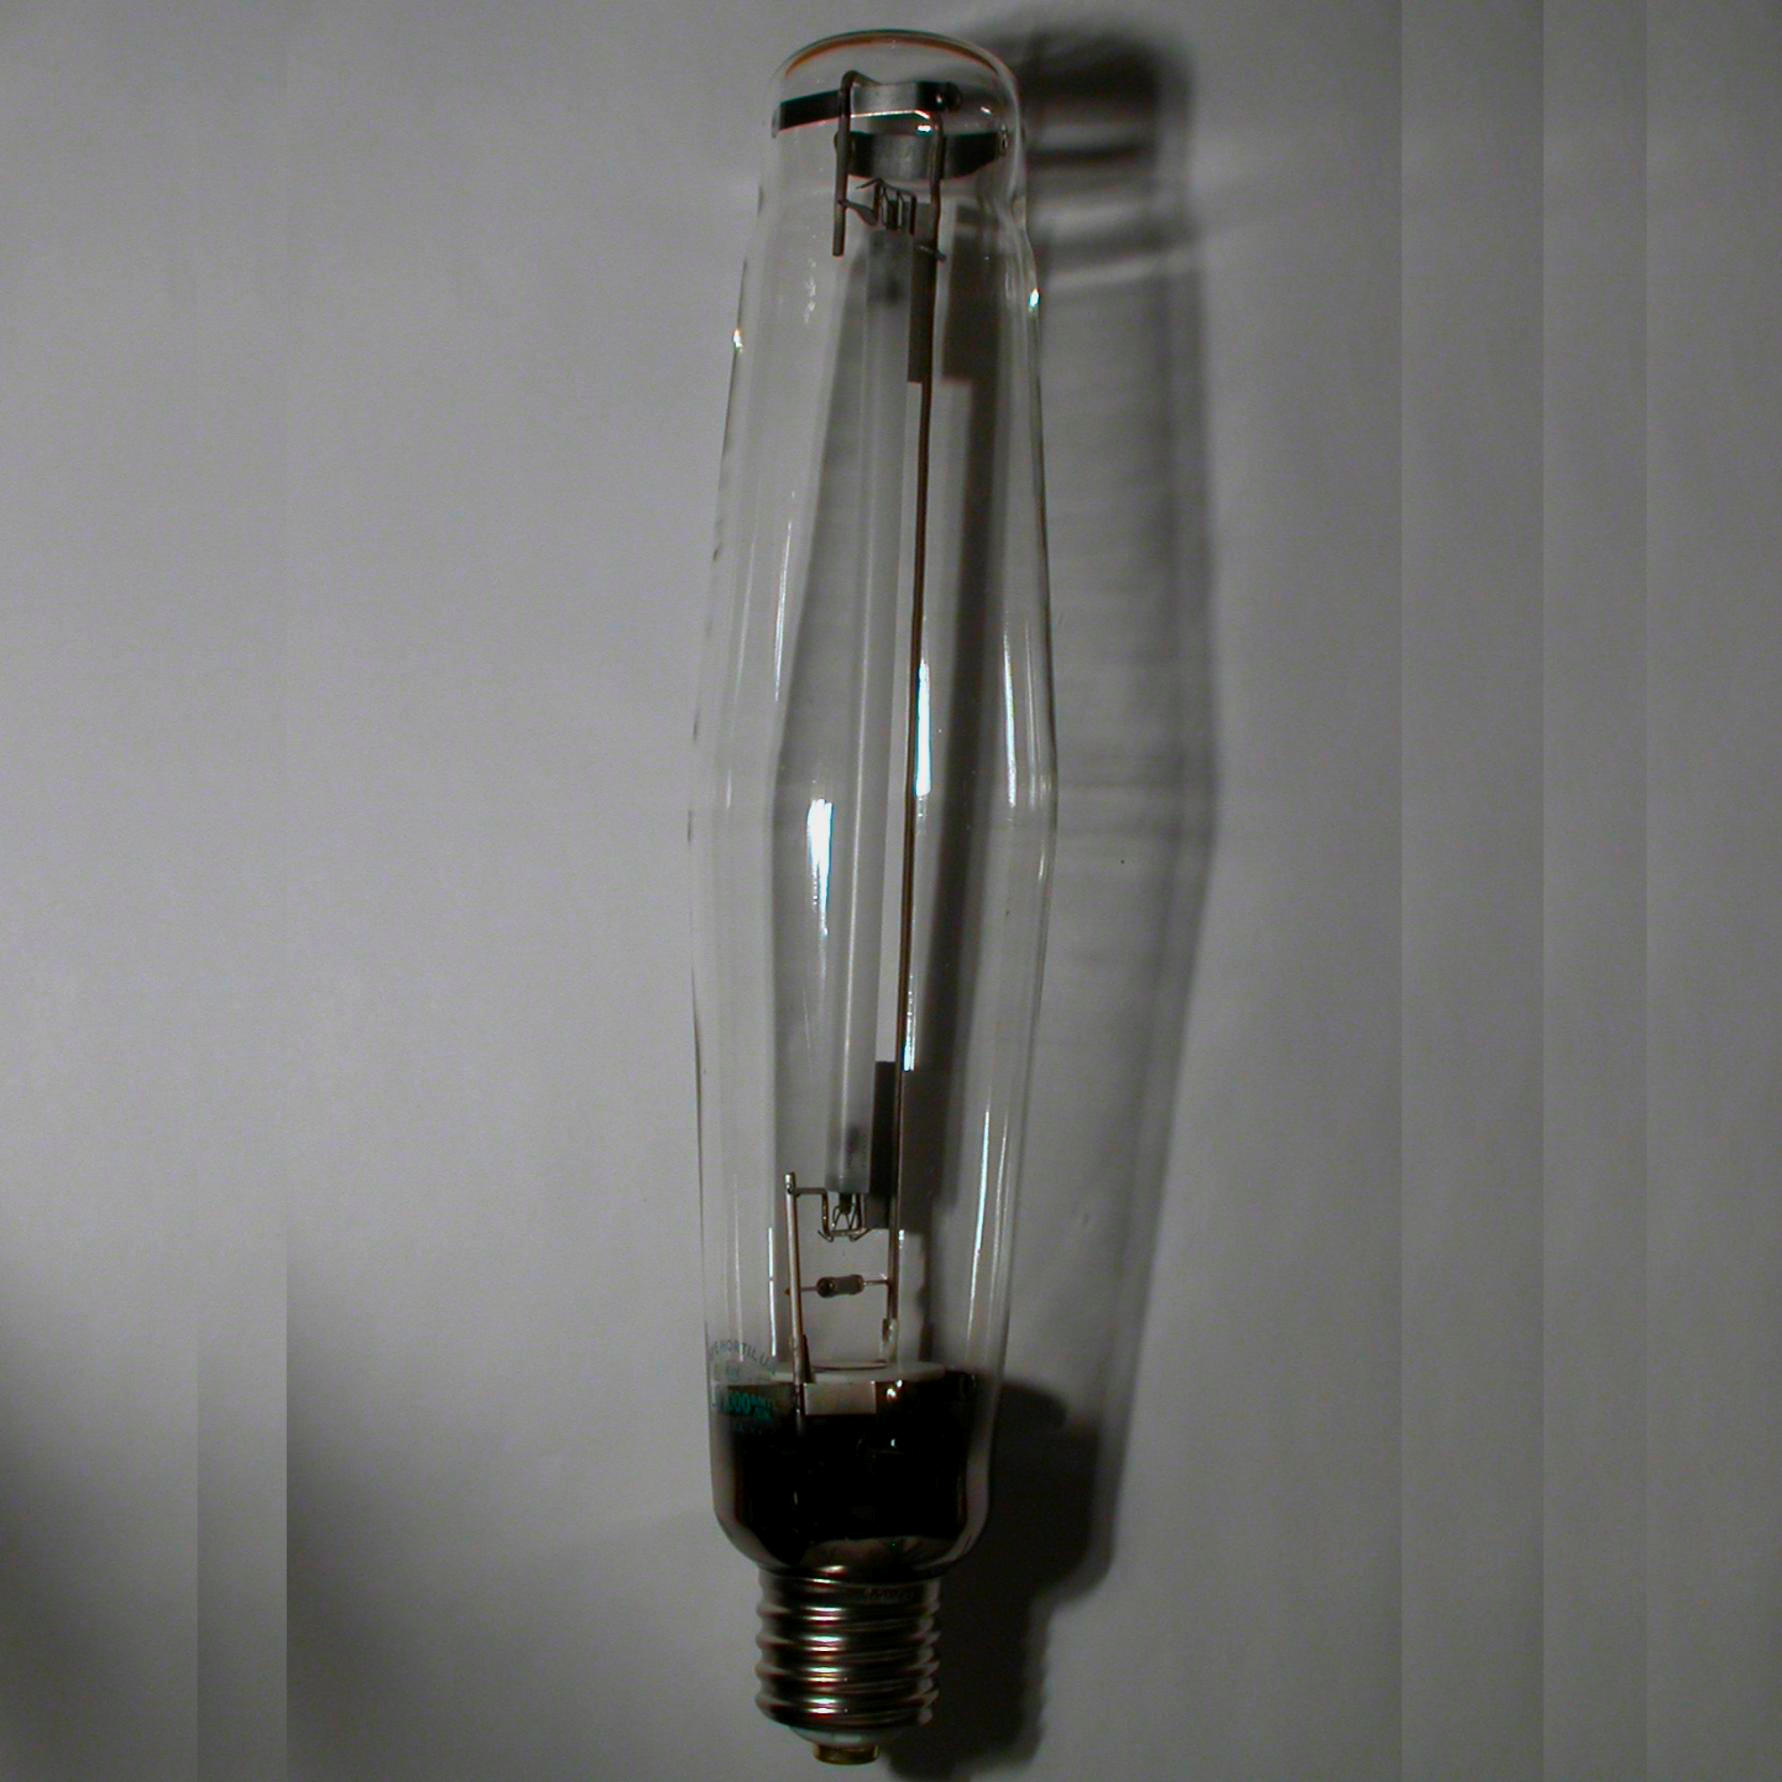 Low Pressure Sodium Vapour Lamp Facts Pictures Stories About The Element Sodium In The